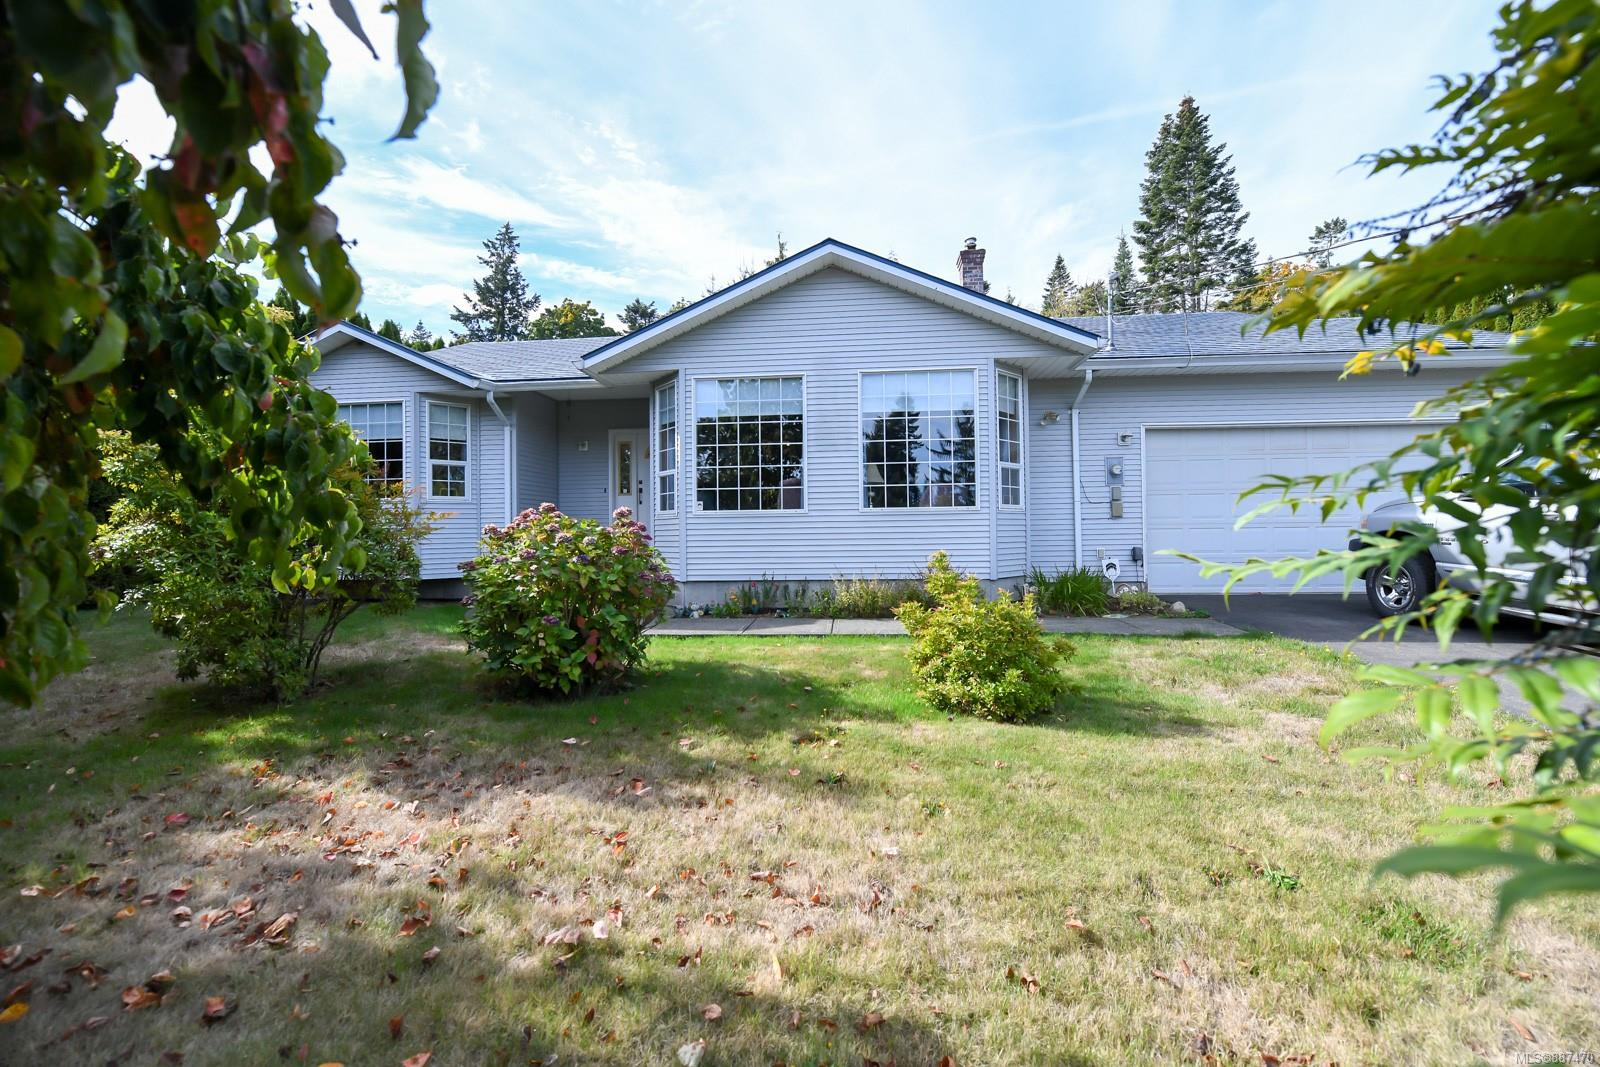 This home is just 5 -10 minutes from Courtenay but feels like you are in your own world, Fully  mature hedging allows for total privacy. Three good size bedrooms with an an suite bath and walk  in closet in the master. The kitchen has lots of cupboards and is open to the dining room and  family room. There is a separate heated shop 24 x 24. Gas forced air furnace and gas fireplace  make those cold winter nights just a memory. 50 year roof installed not long ago.